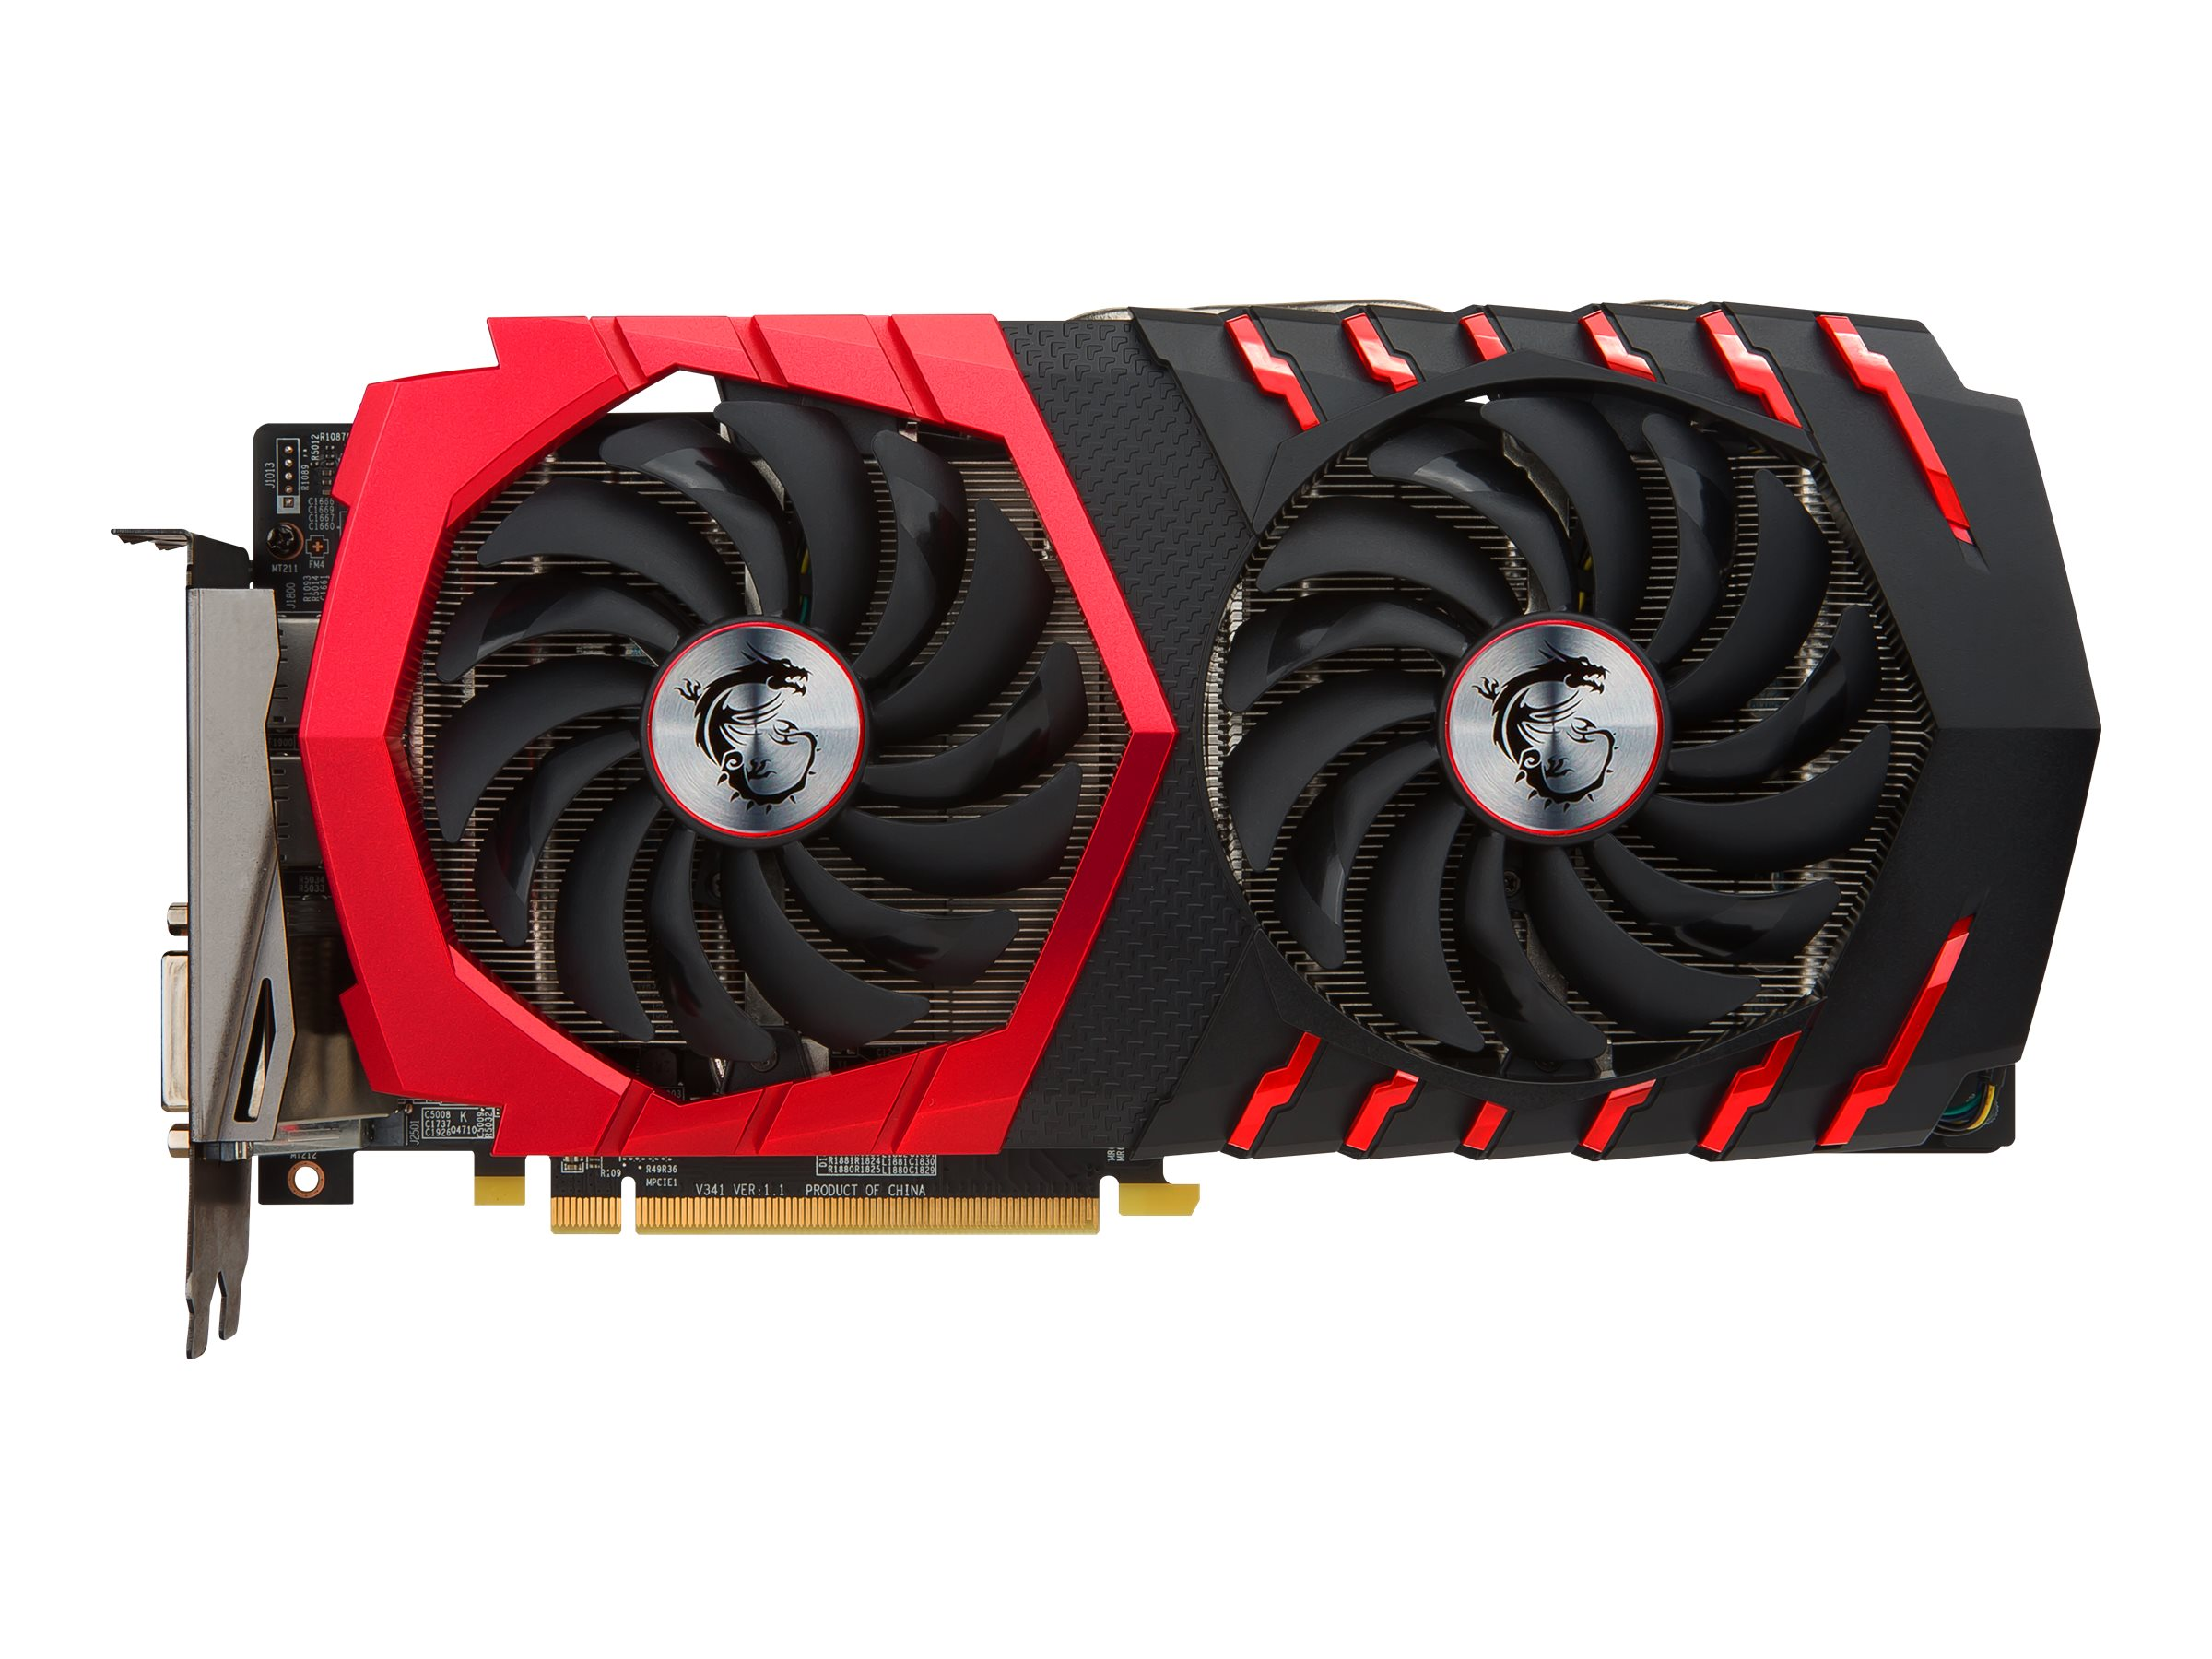 Microstar RX 470 GAMING X 4G Image 1